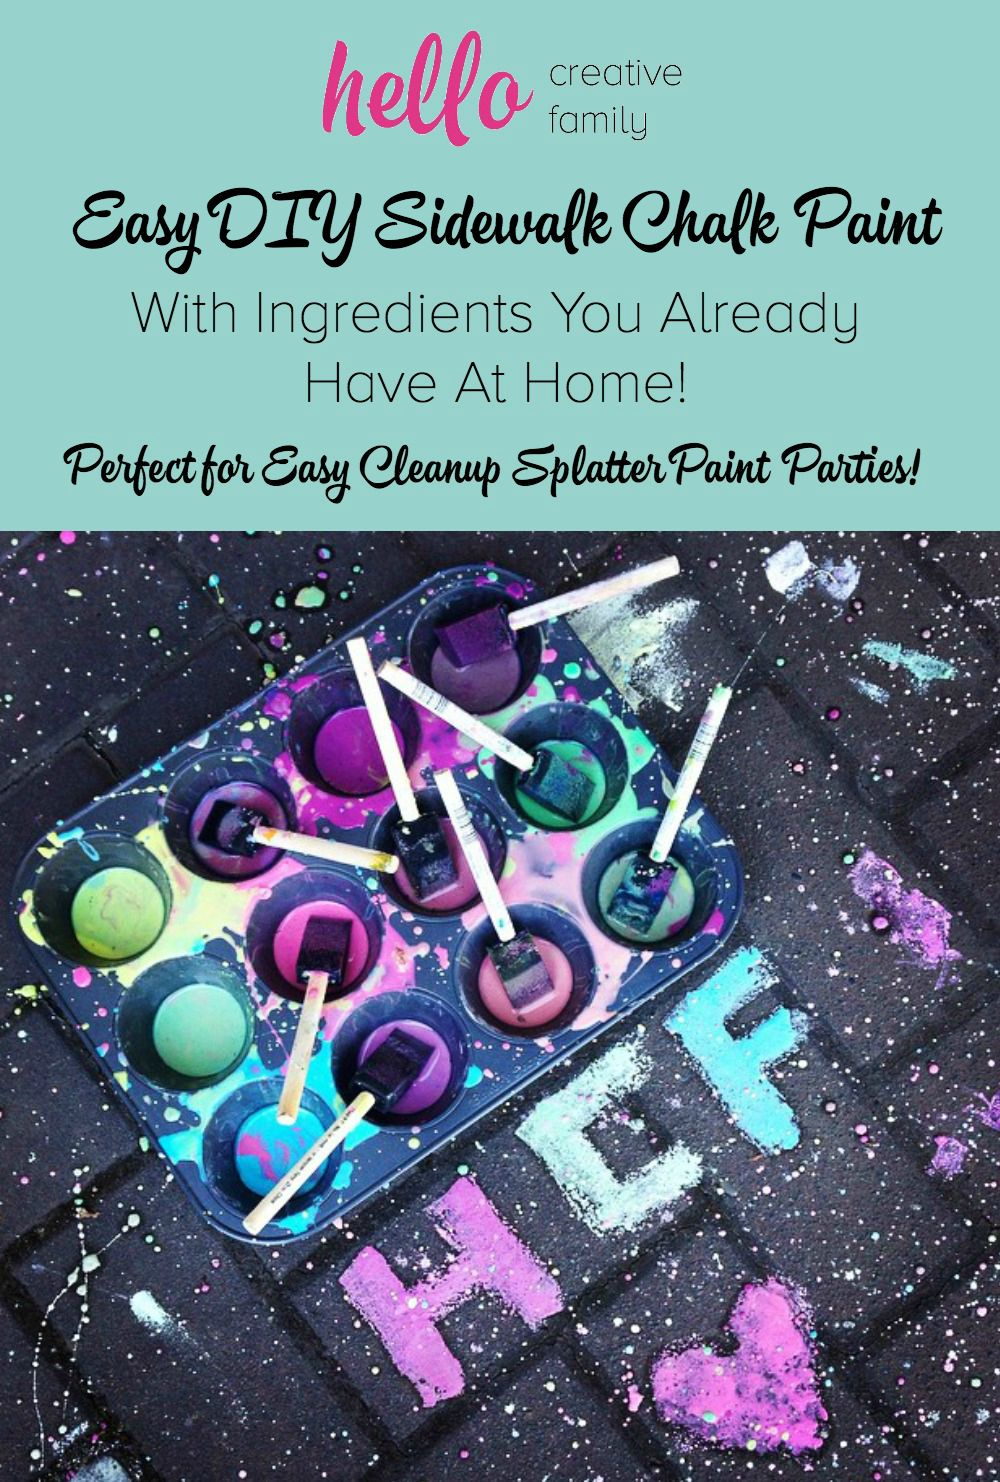 Easy DIY Sidewalk Chalk Paint With Ingredients You Already Have at Home! Perfect for easy cleanup splatter paint parties!